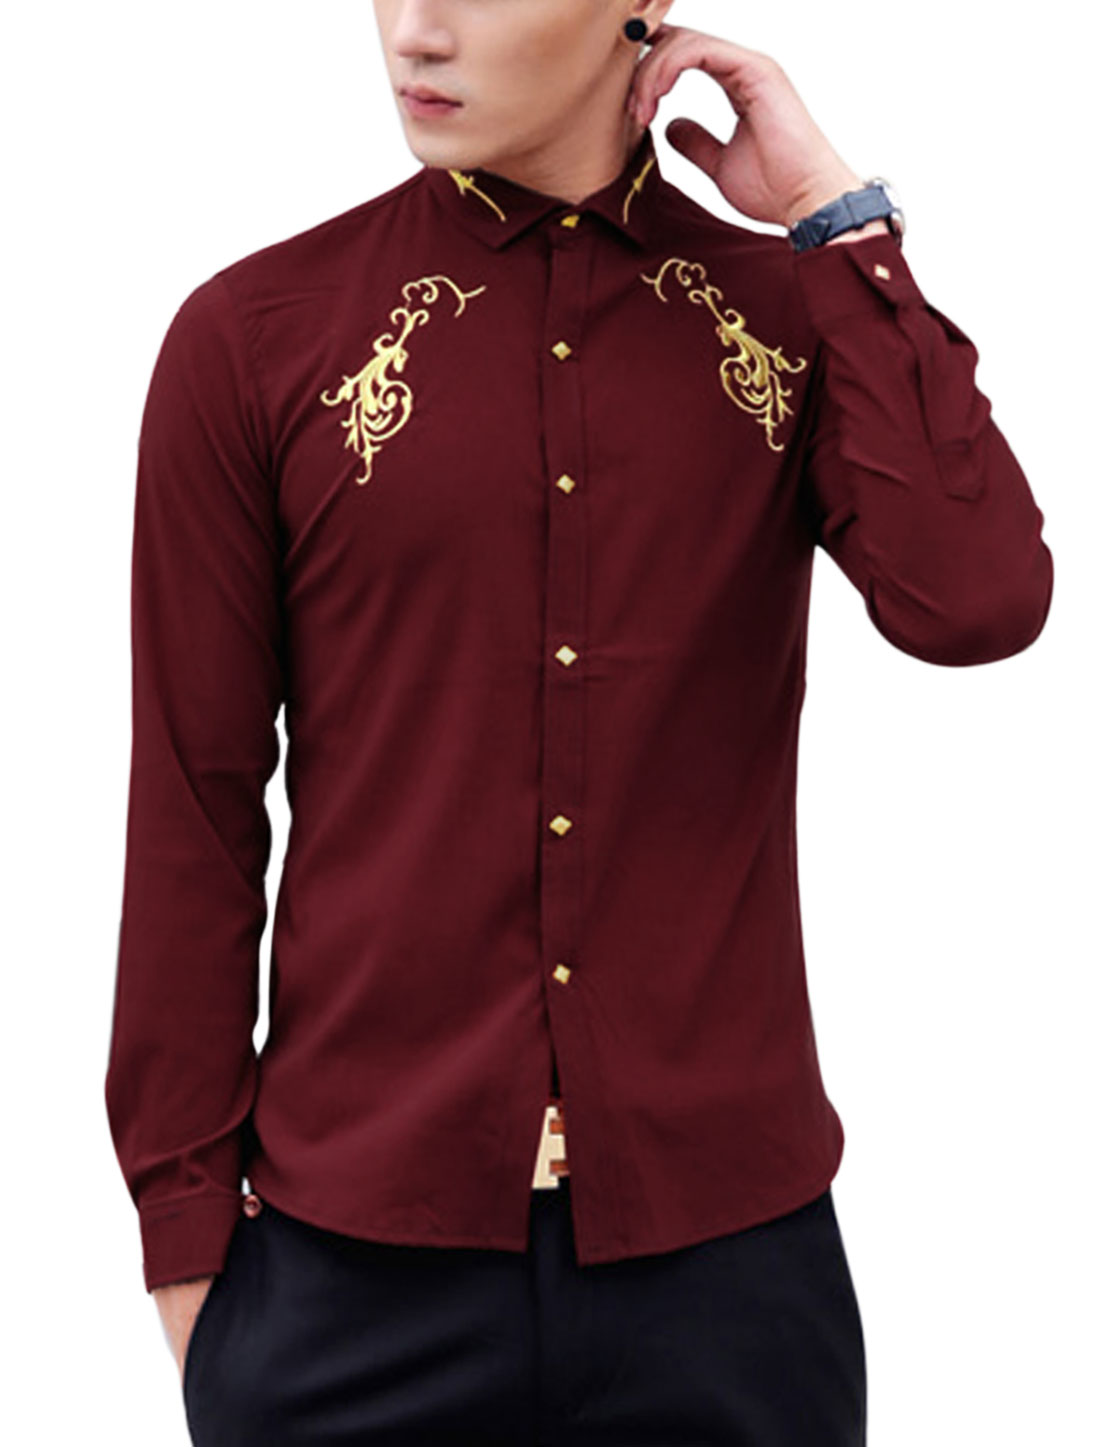 Men Point Collar Long Sleeve Button Closure Cuff Casual Shirt Burgundy M